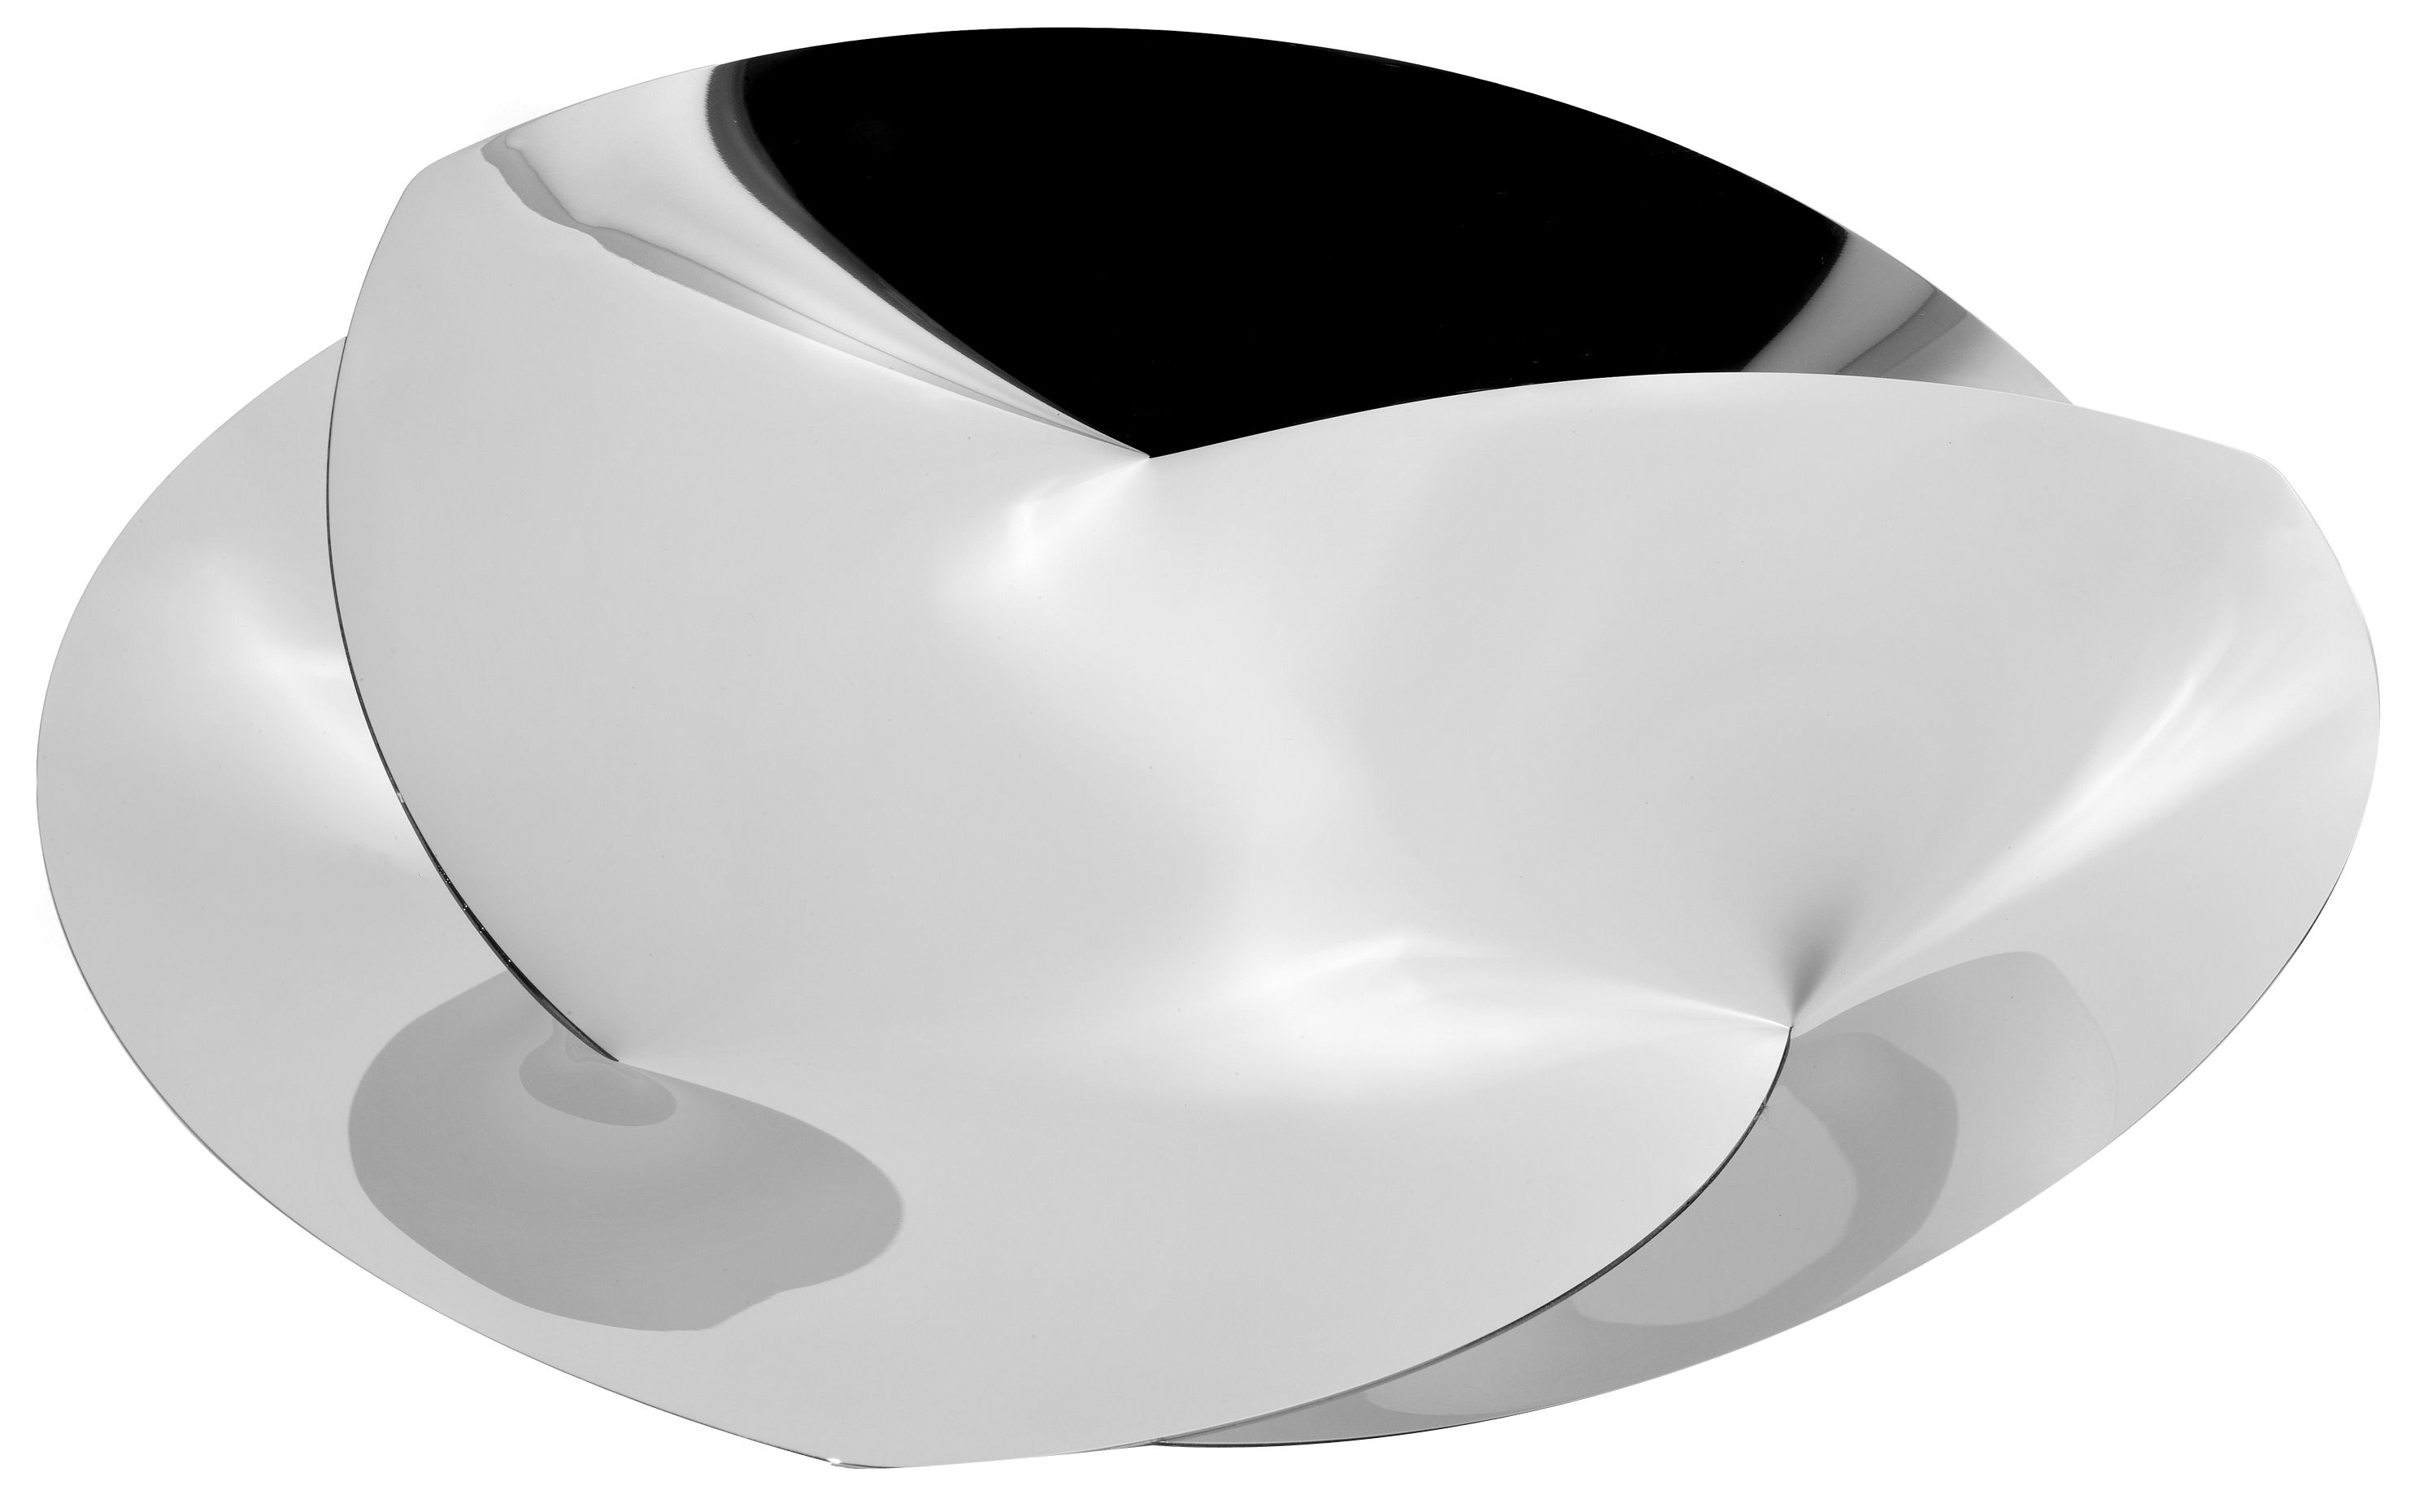 Tableware - Fruit Bowls & Centrepieces - Resonance Centrepiece - Ø 60 cm by Alessi - Steel - Stainless steel